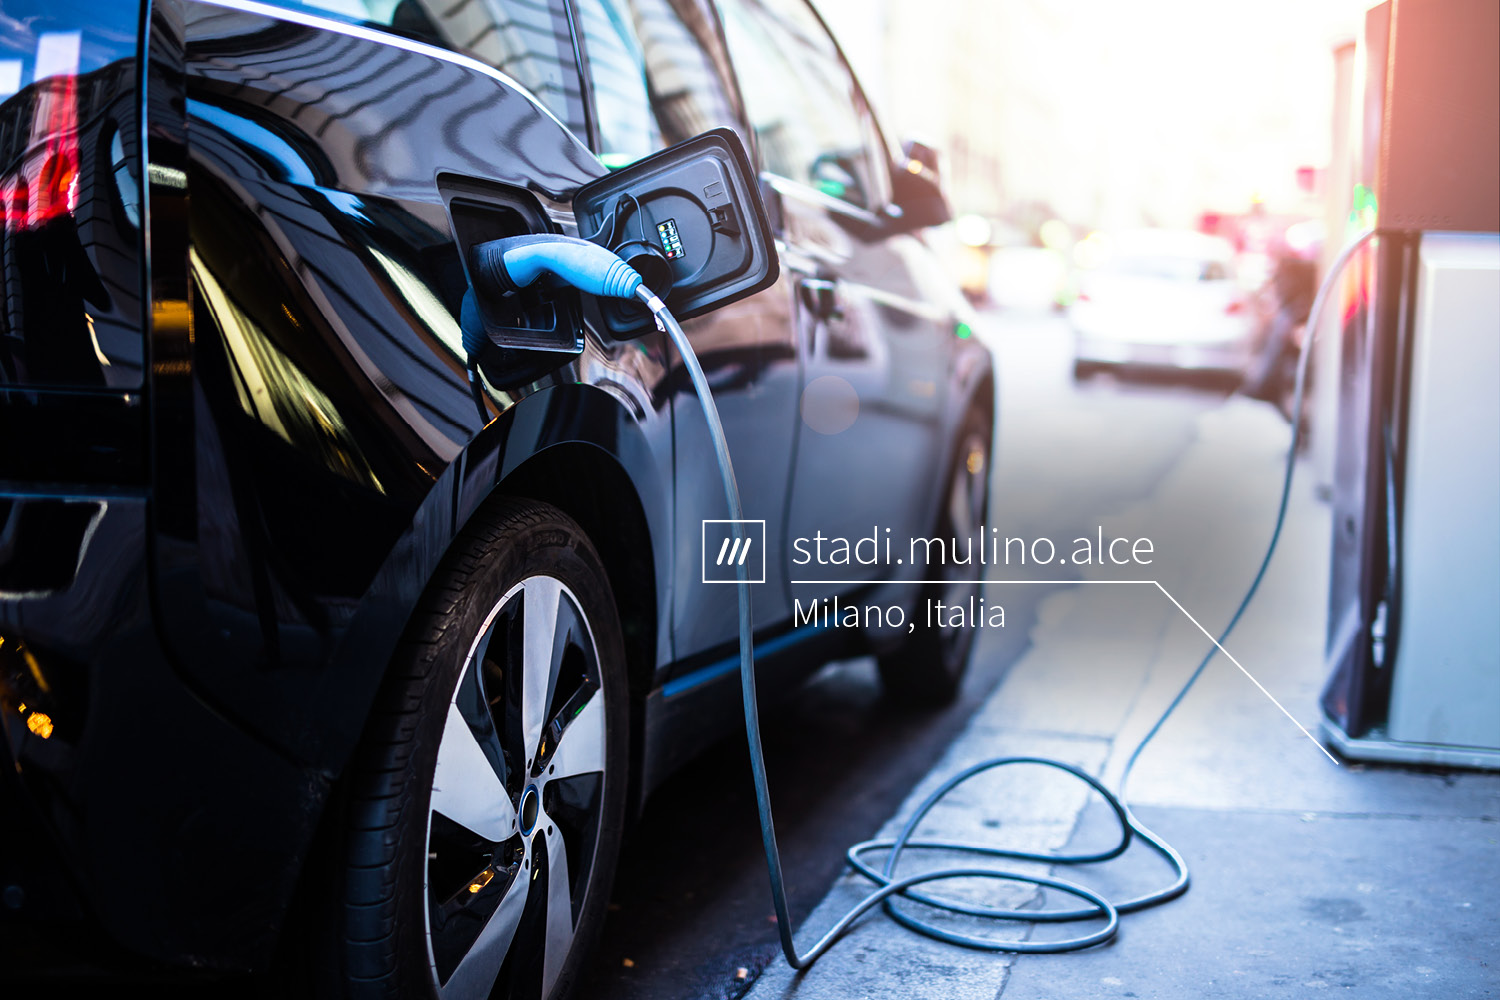 electric car at charging station at 3 word address stadi.mulion.alce